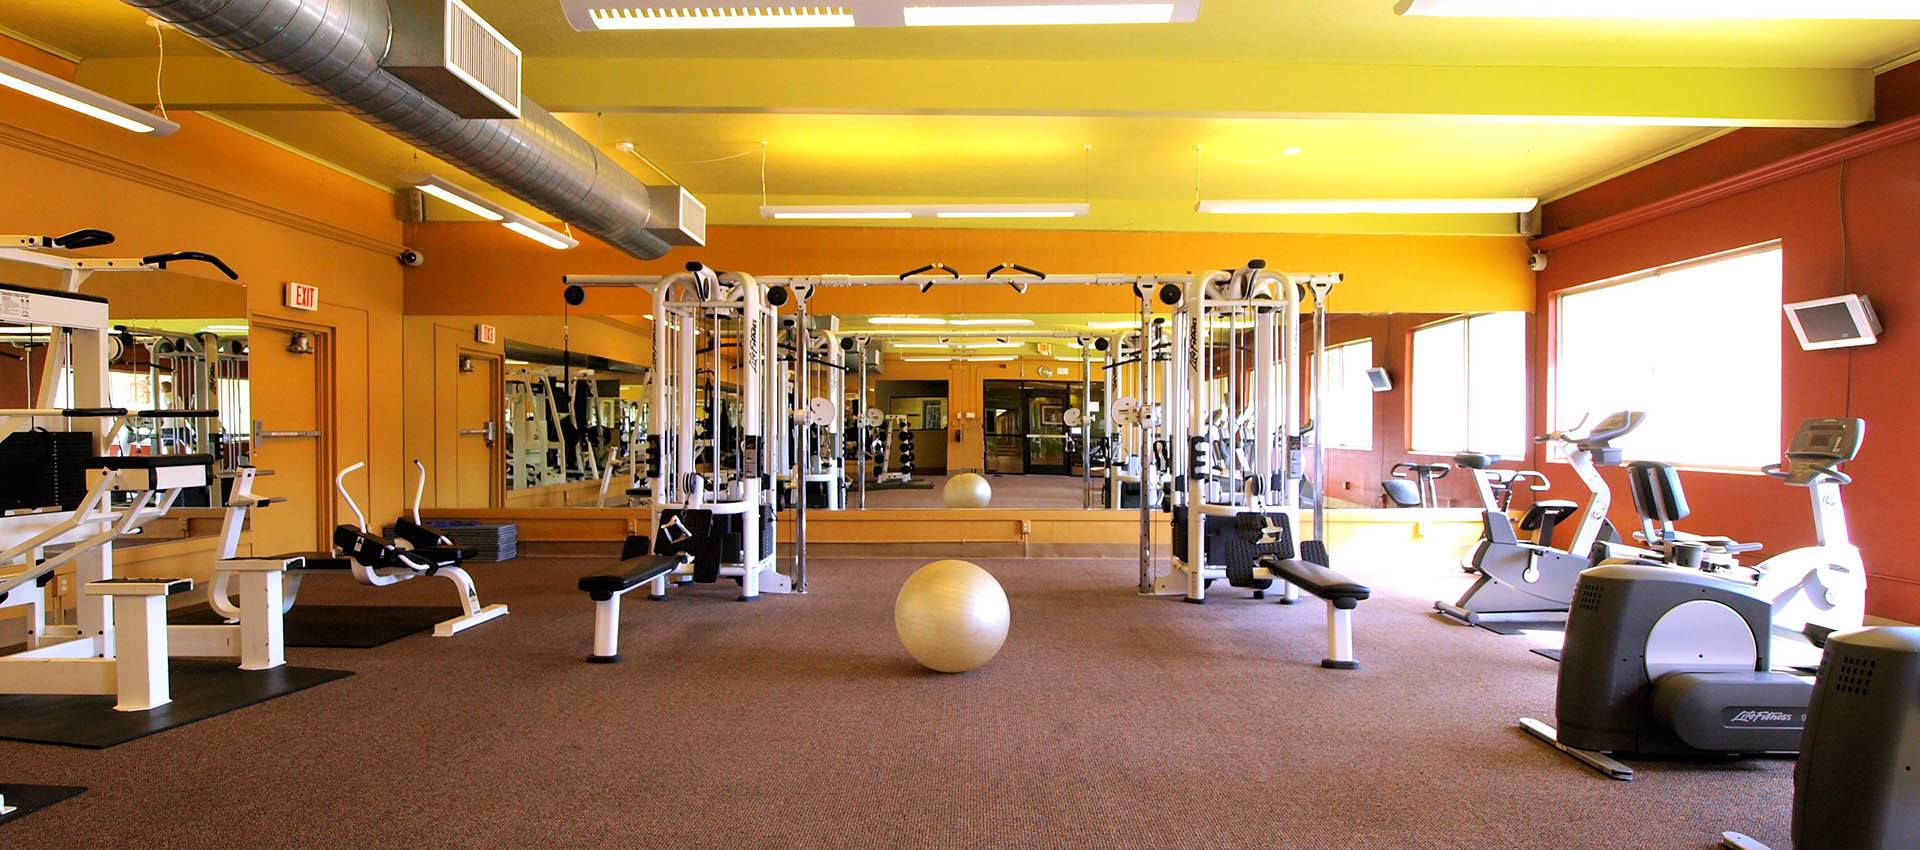 Enjoy the fitness center at Craig Student Living